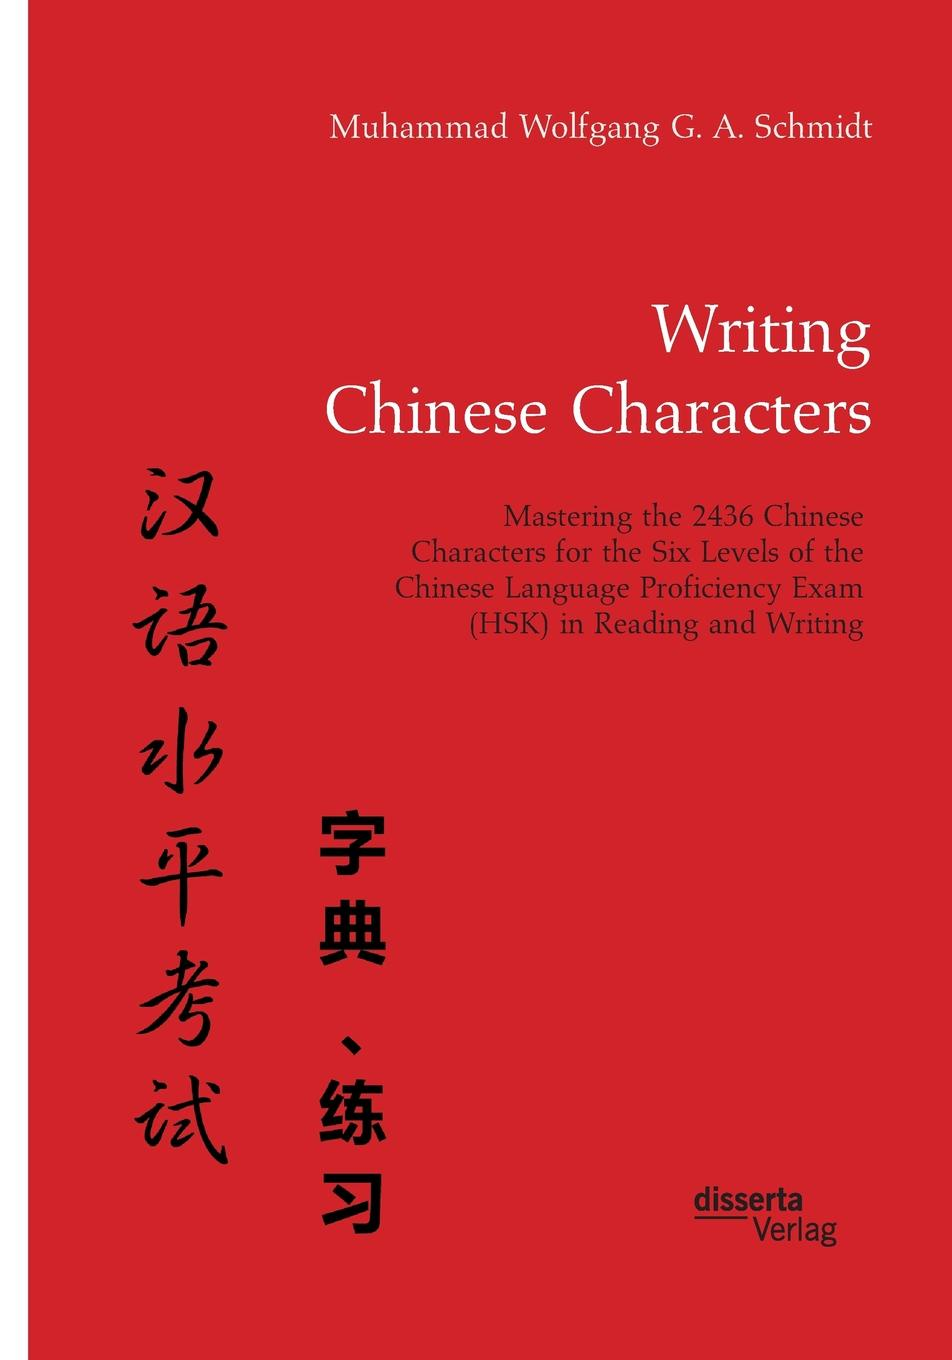 лучшая цена Muhammad Wolfgang G. A. Schmidt Writing Chinese Characters. Mastering the 2436 Chinese Characters for the Six Levels of the Chinese Language Proficiency Exam (HSK) in Reading and Writing